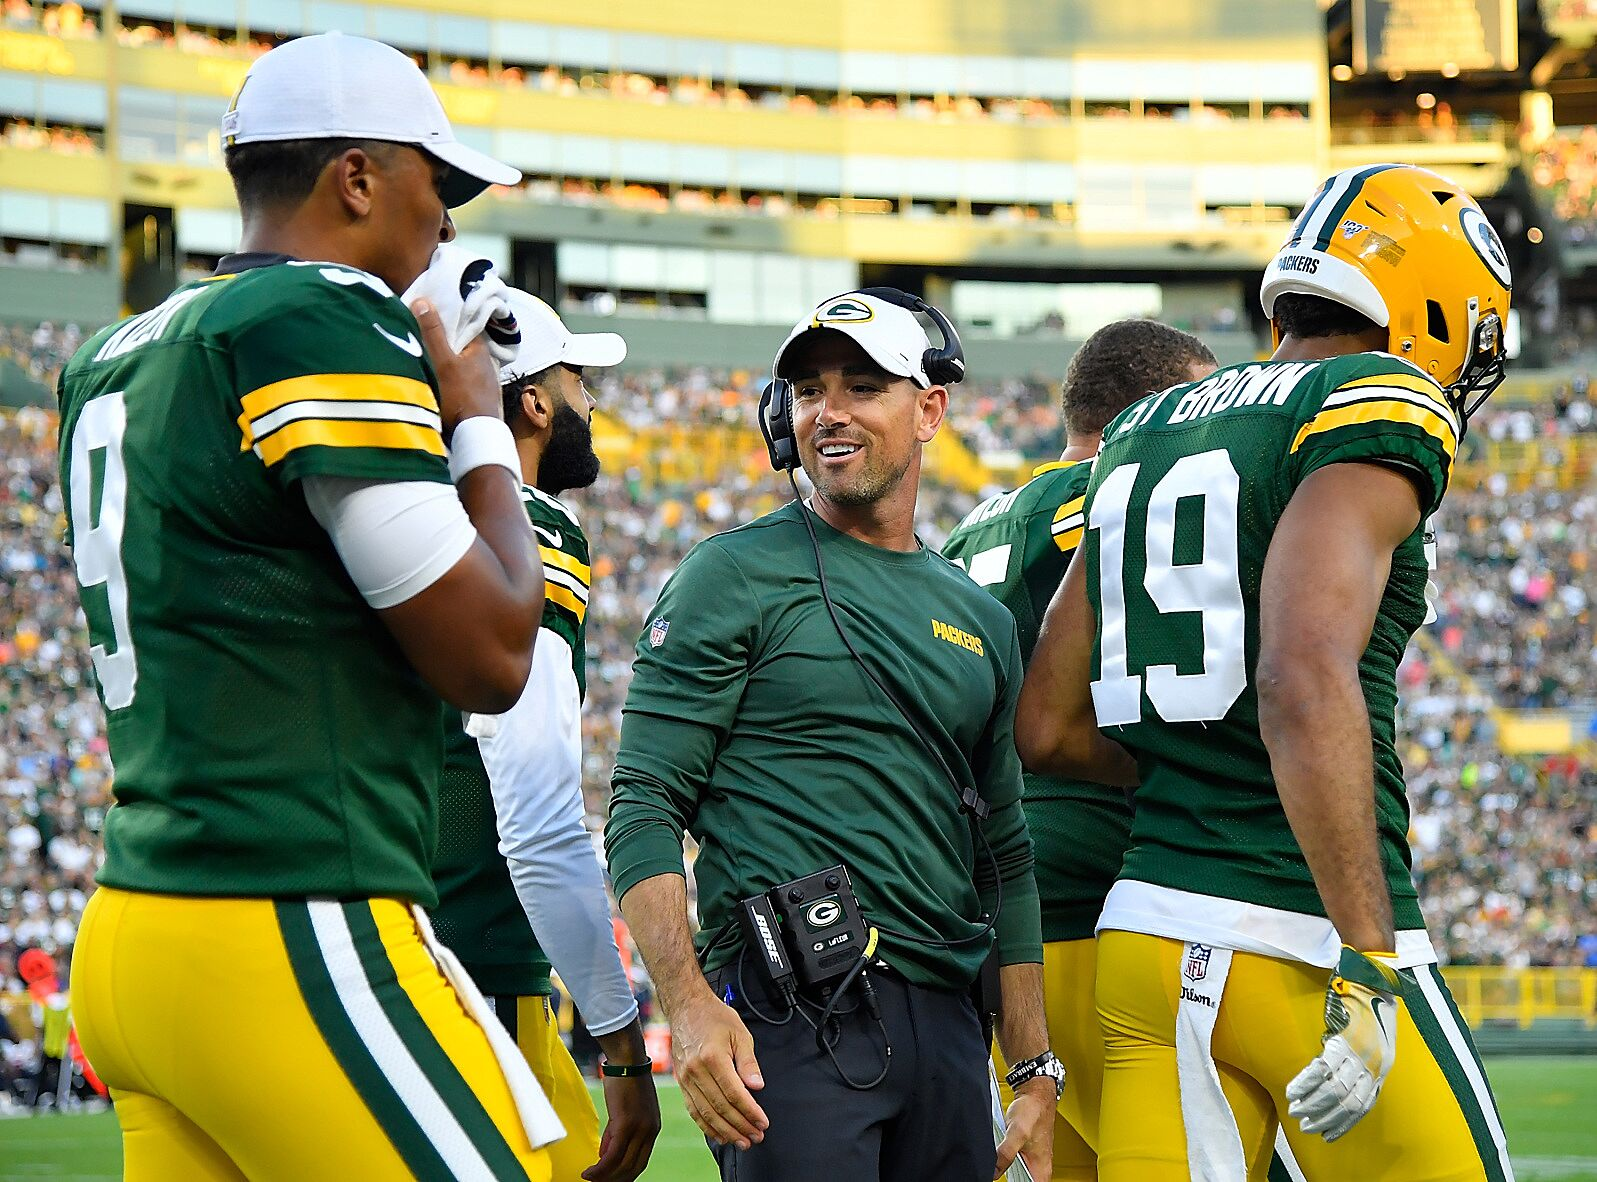 Green Bay Packers Stock Report: 3 Players trending up and 3 down